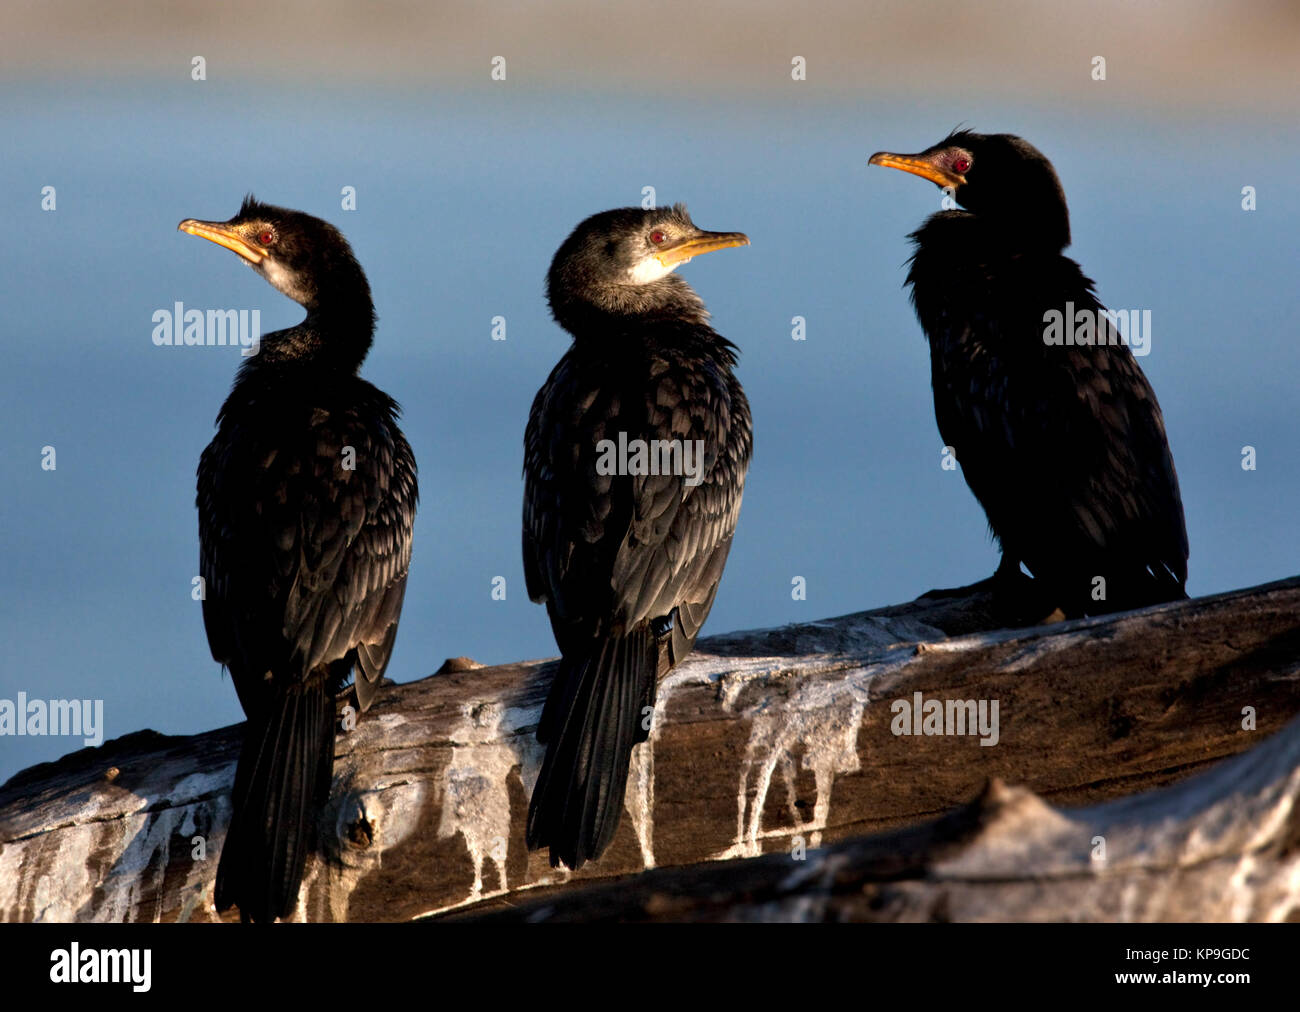 Reed Cormorant (Phalacrocorax africanus) on the Chobe River in Botswana - Stock Image